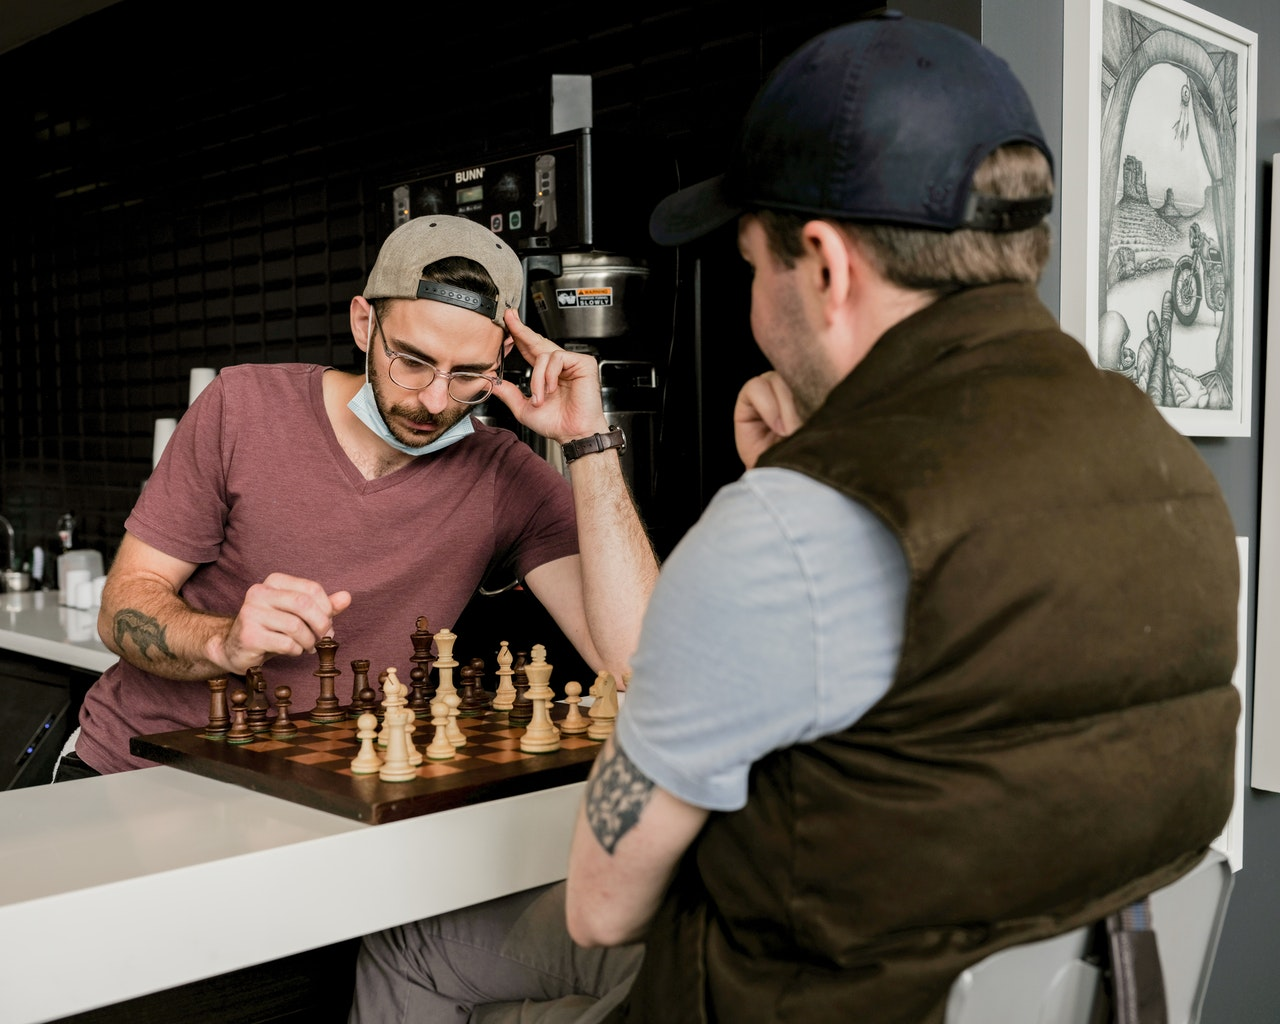 two men playing chess as hobby